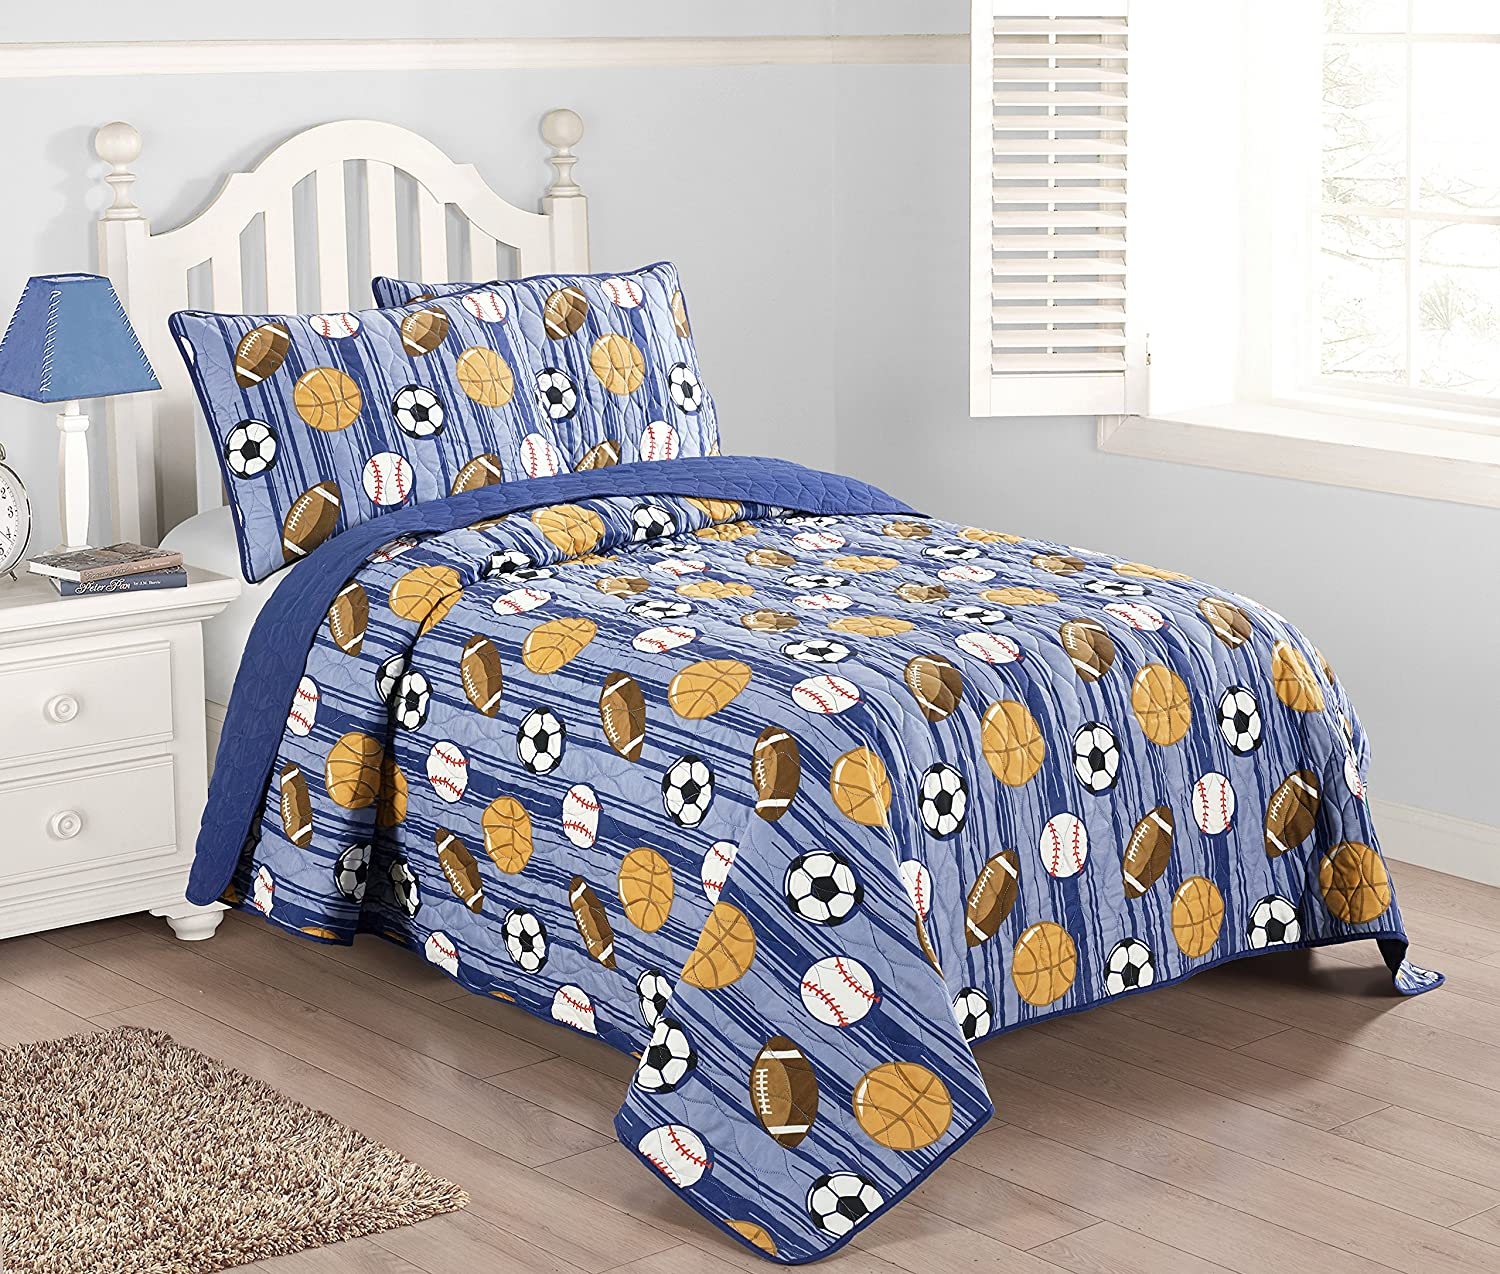 Kute Kids 2-3 Piece Quilt Set Including Sham(s) – Available in Twin and Full Size – Perfect for Toddlers and Boys – Baseball, Football, Soccer and Basketball Design (Blue, Full)